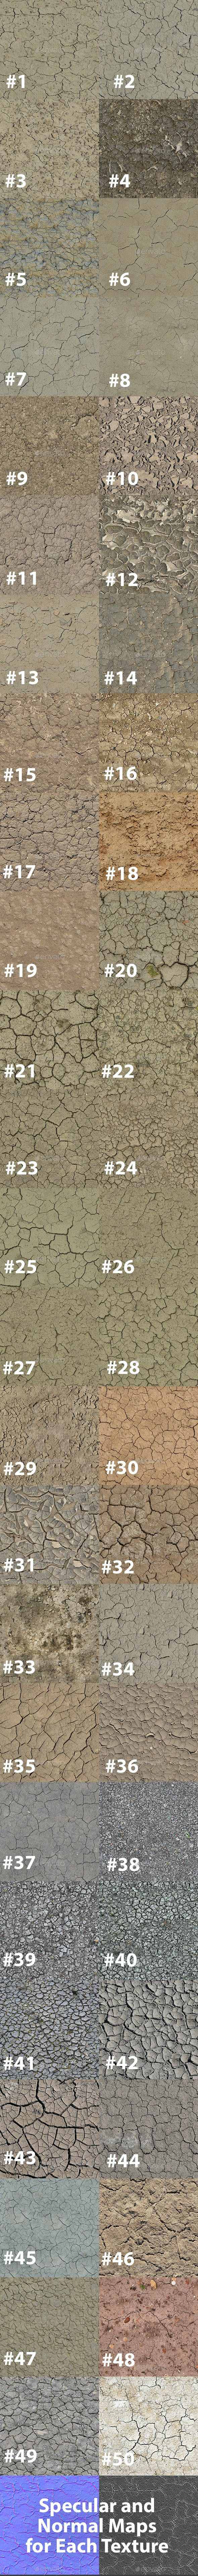 Pack of 50 Seamless Cracked Soil Textures - 3DOcean Item for Sale